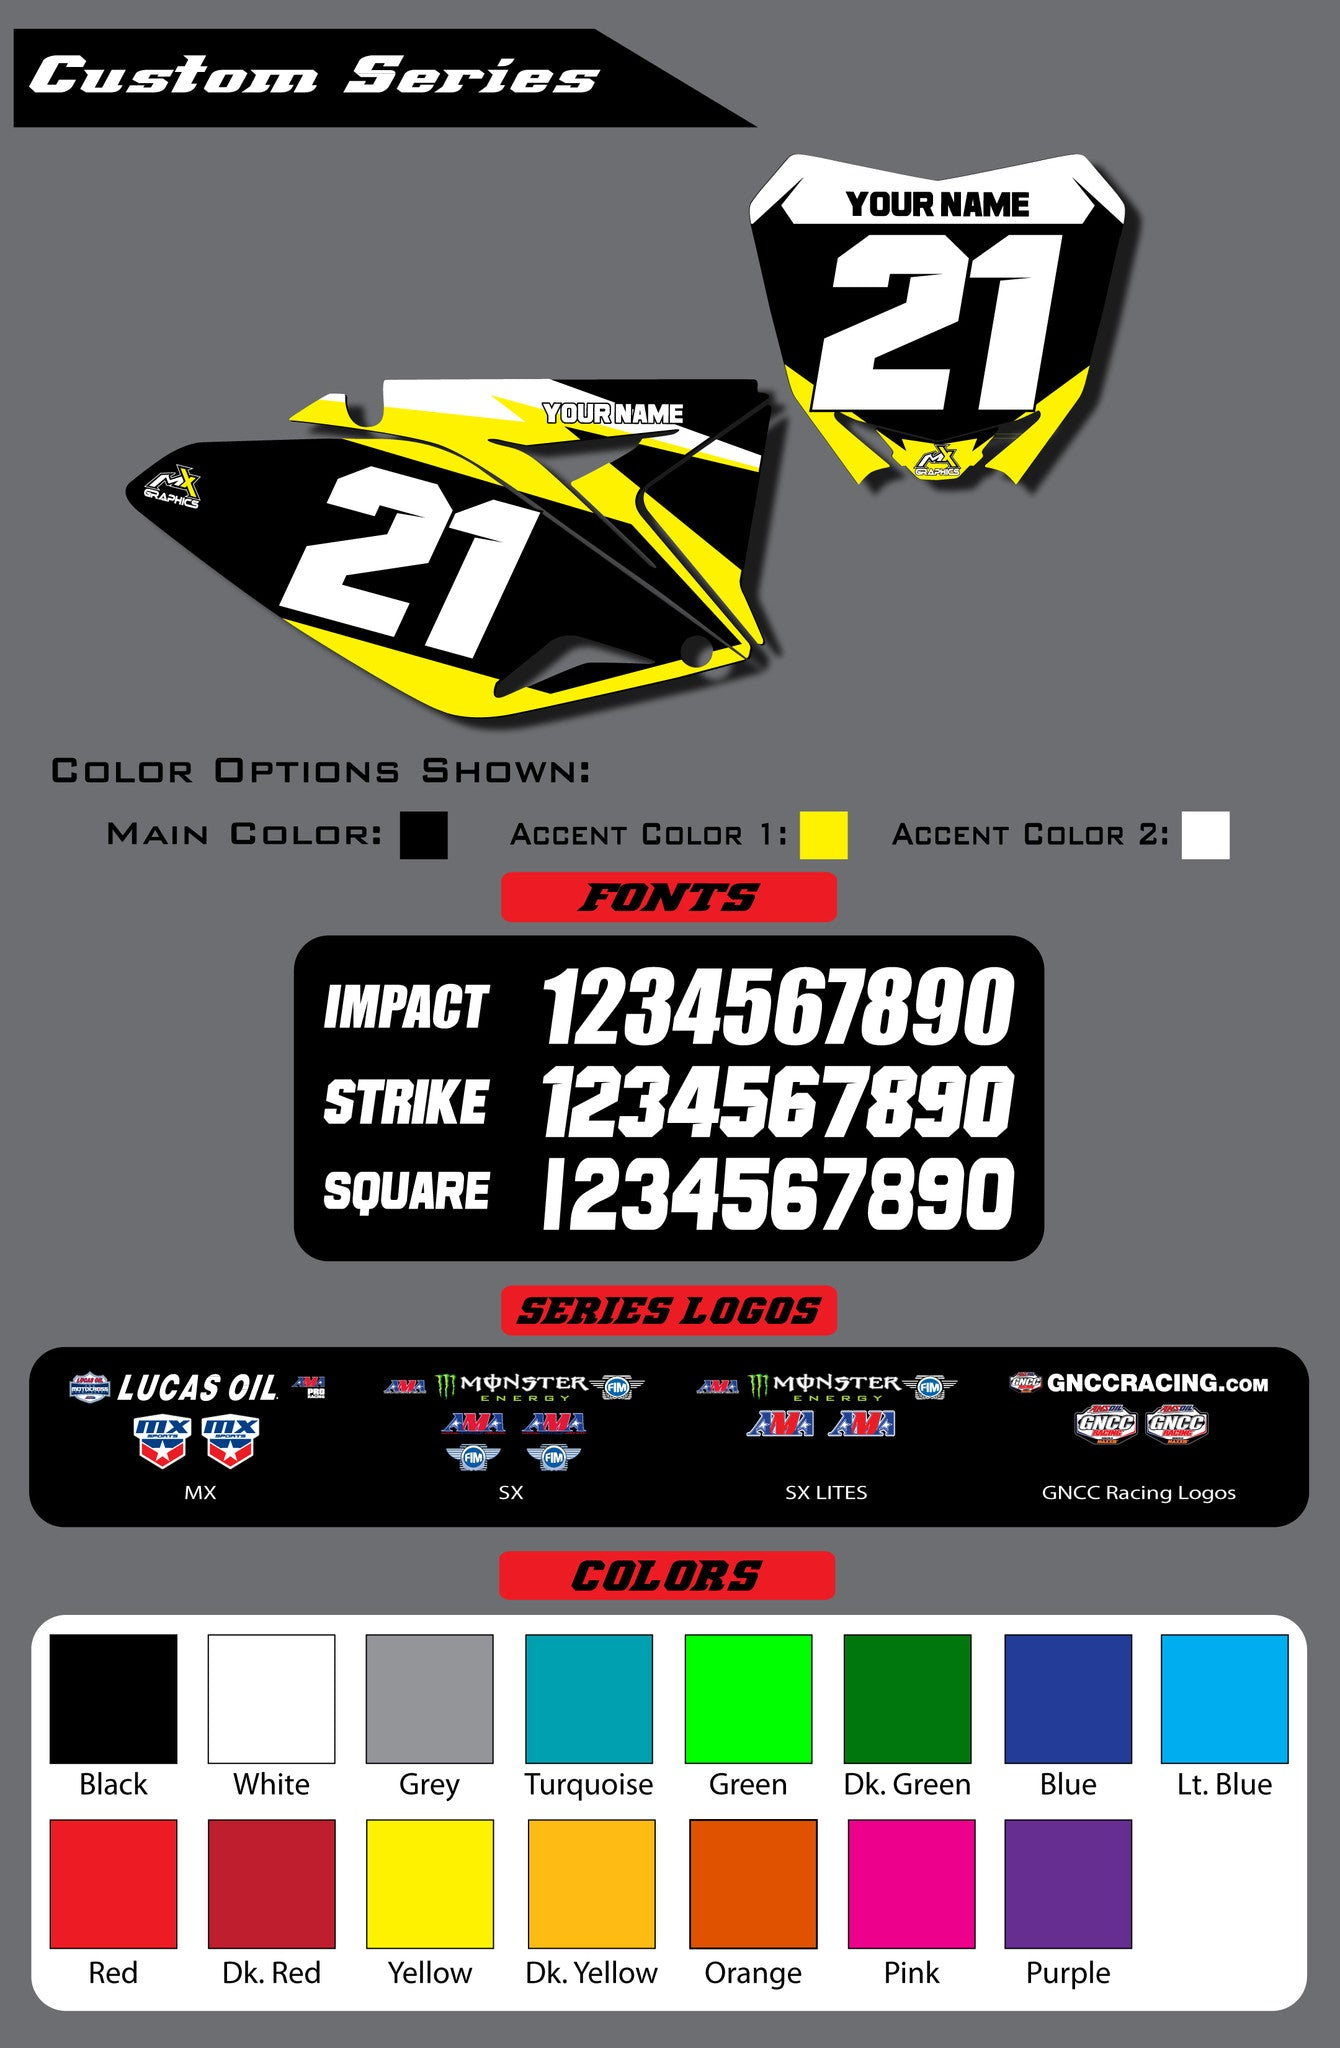 Suzuki Custom Series Backgrounds